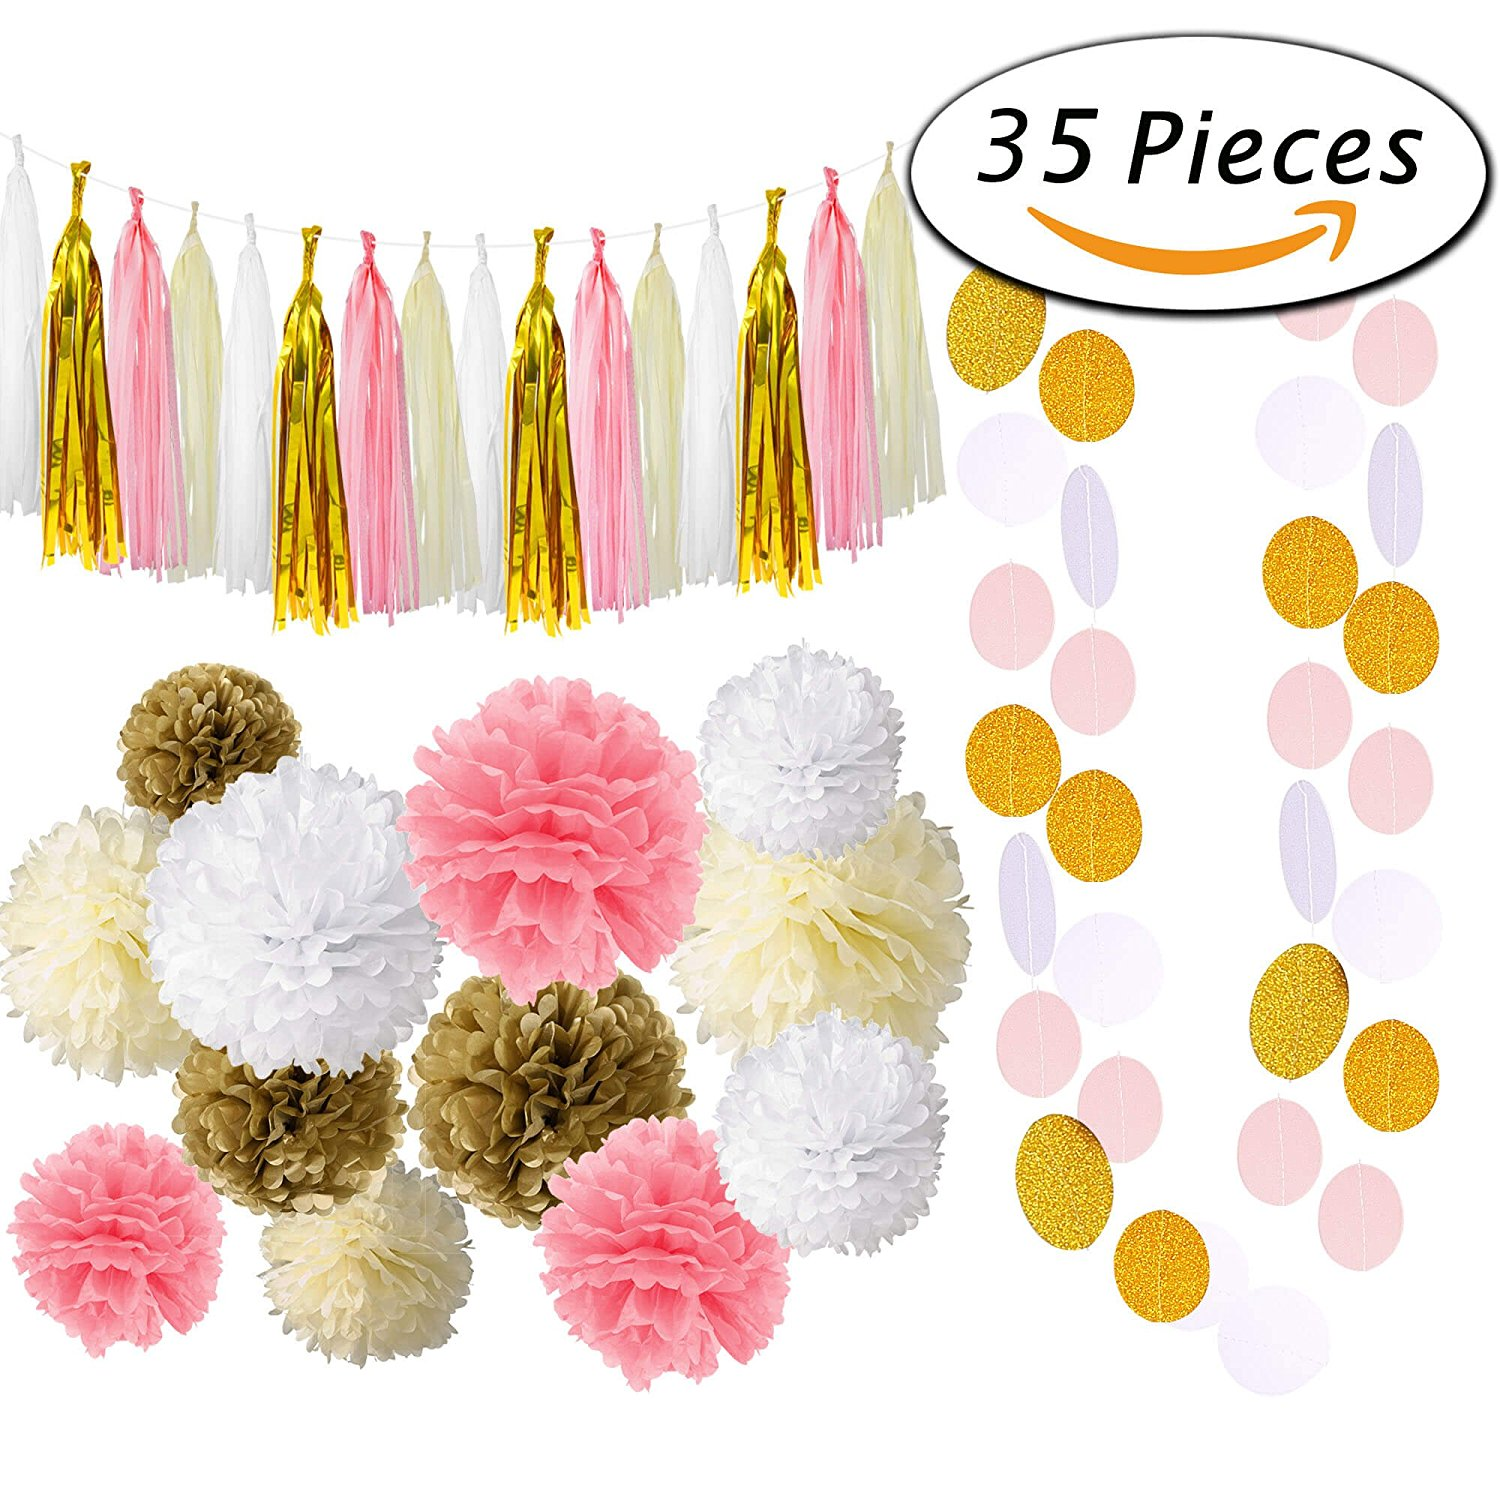 Currently available on Prime for $15.99 - WARNING: You have to fluff the poms and create the tassle garland yourself! Time-consuming, but worth it!